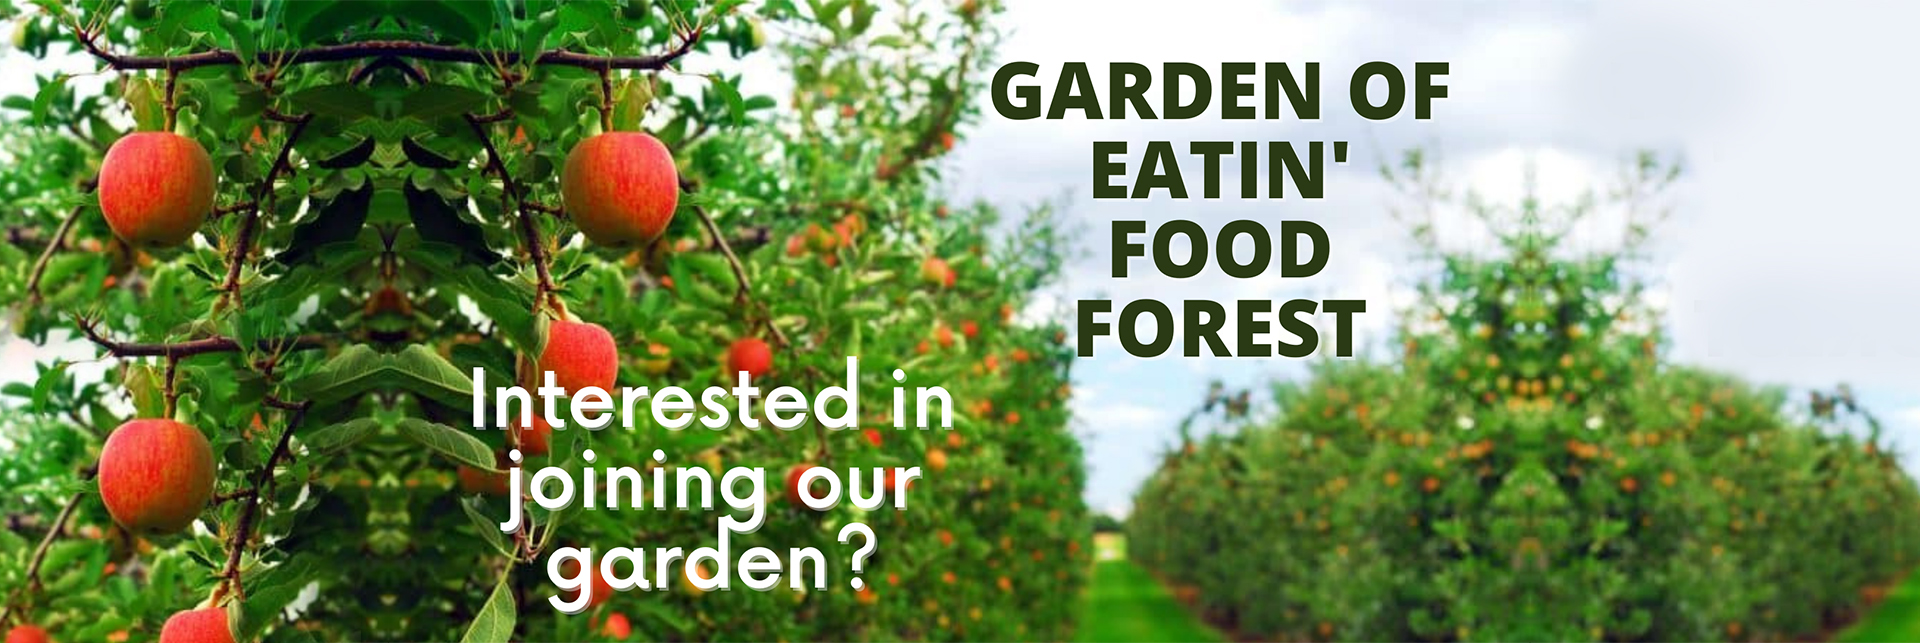 Garden of Eatin Food Forest_updated